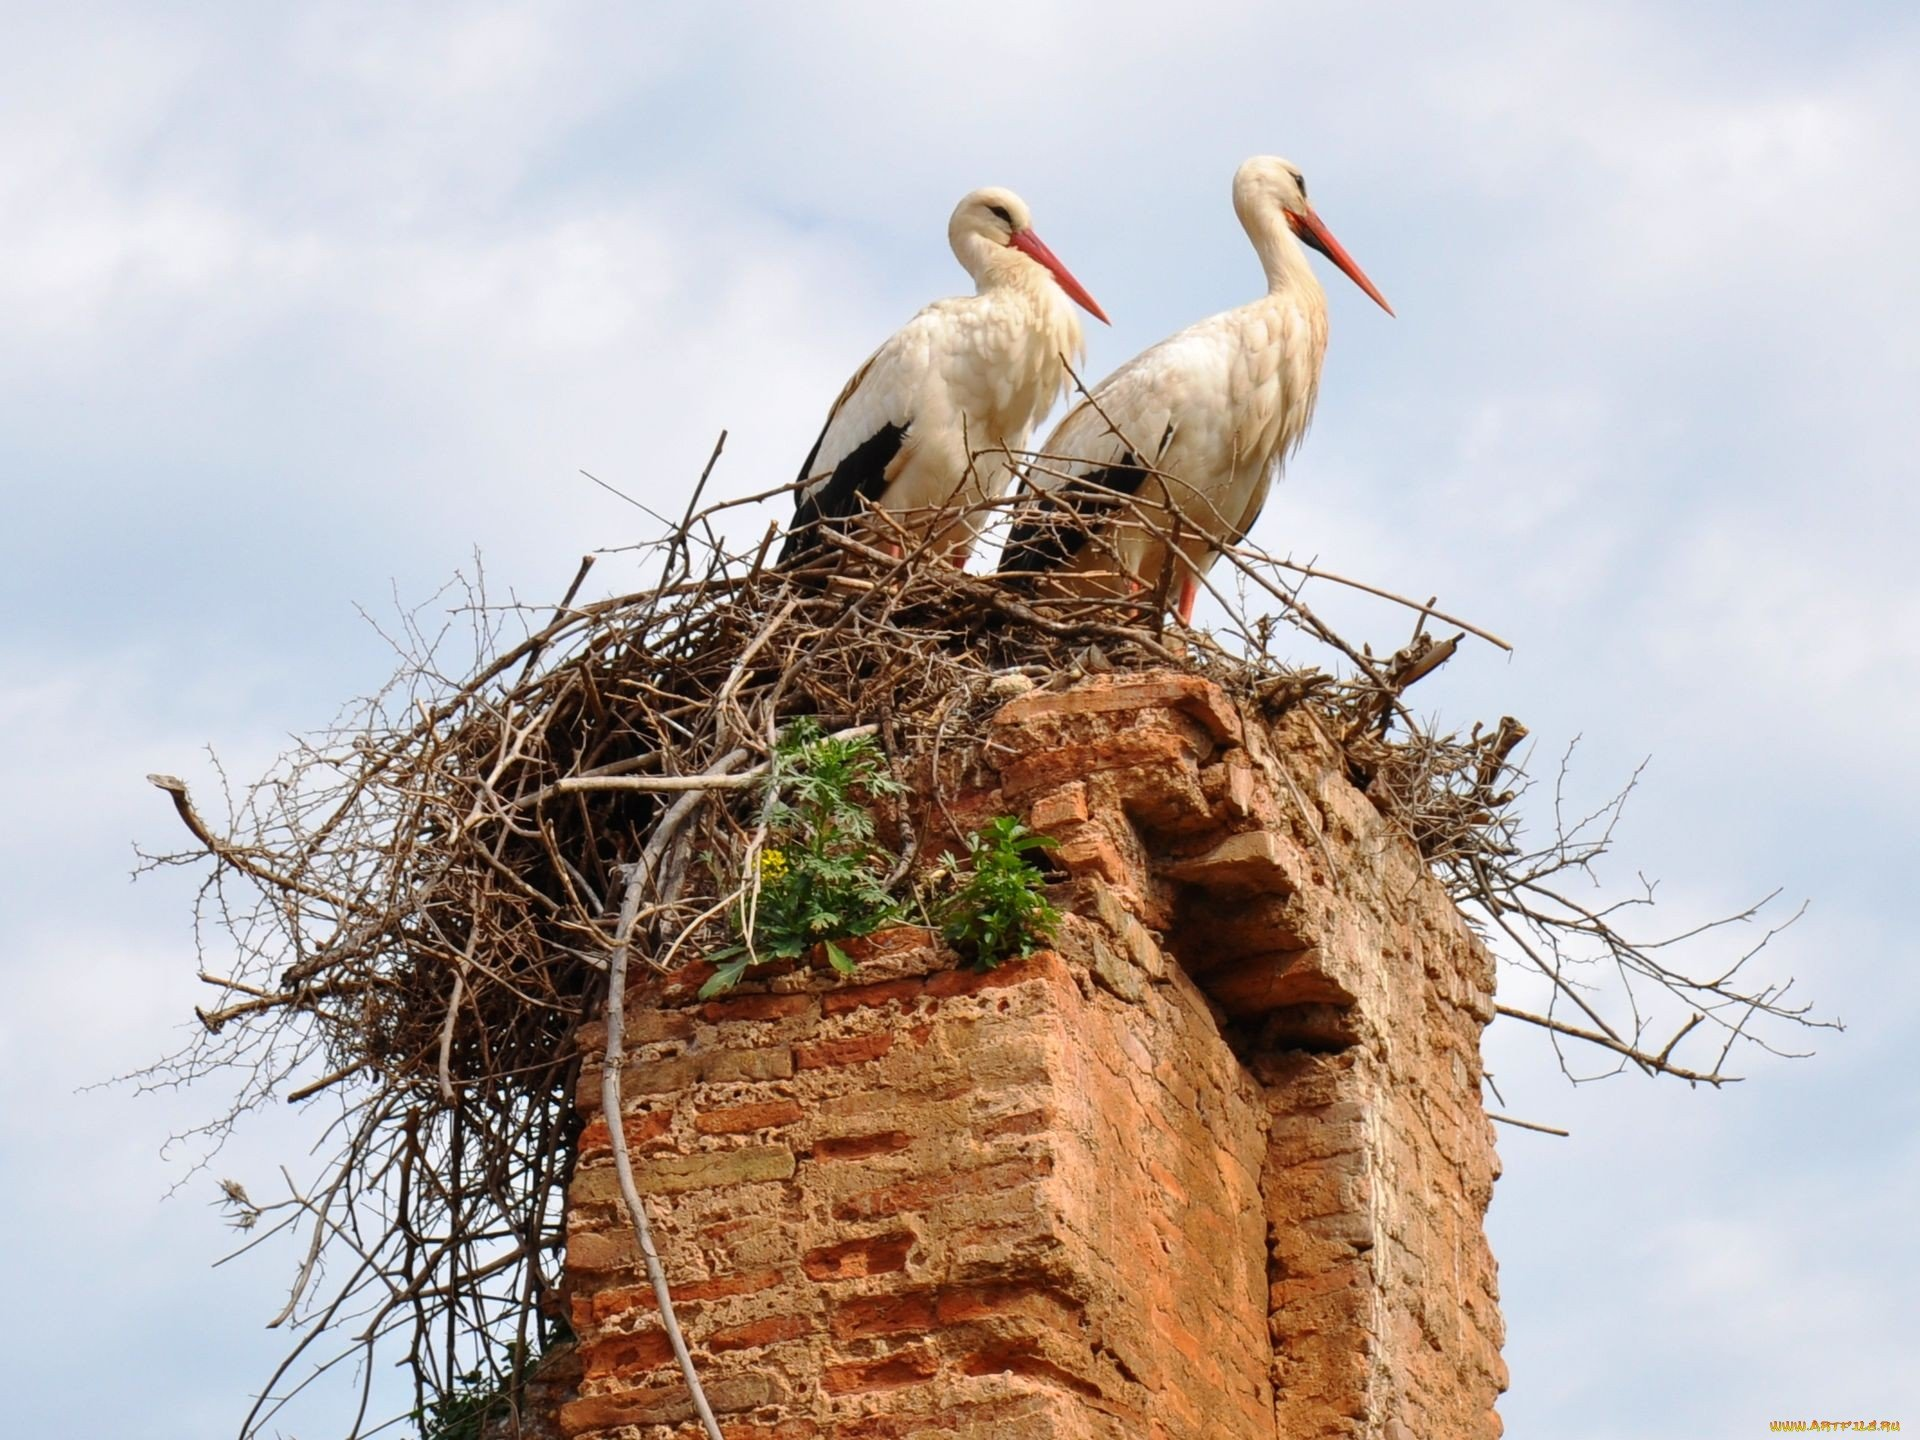 High resolution White Stork hd 1920x1440 background ID:9594 for desktop